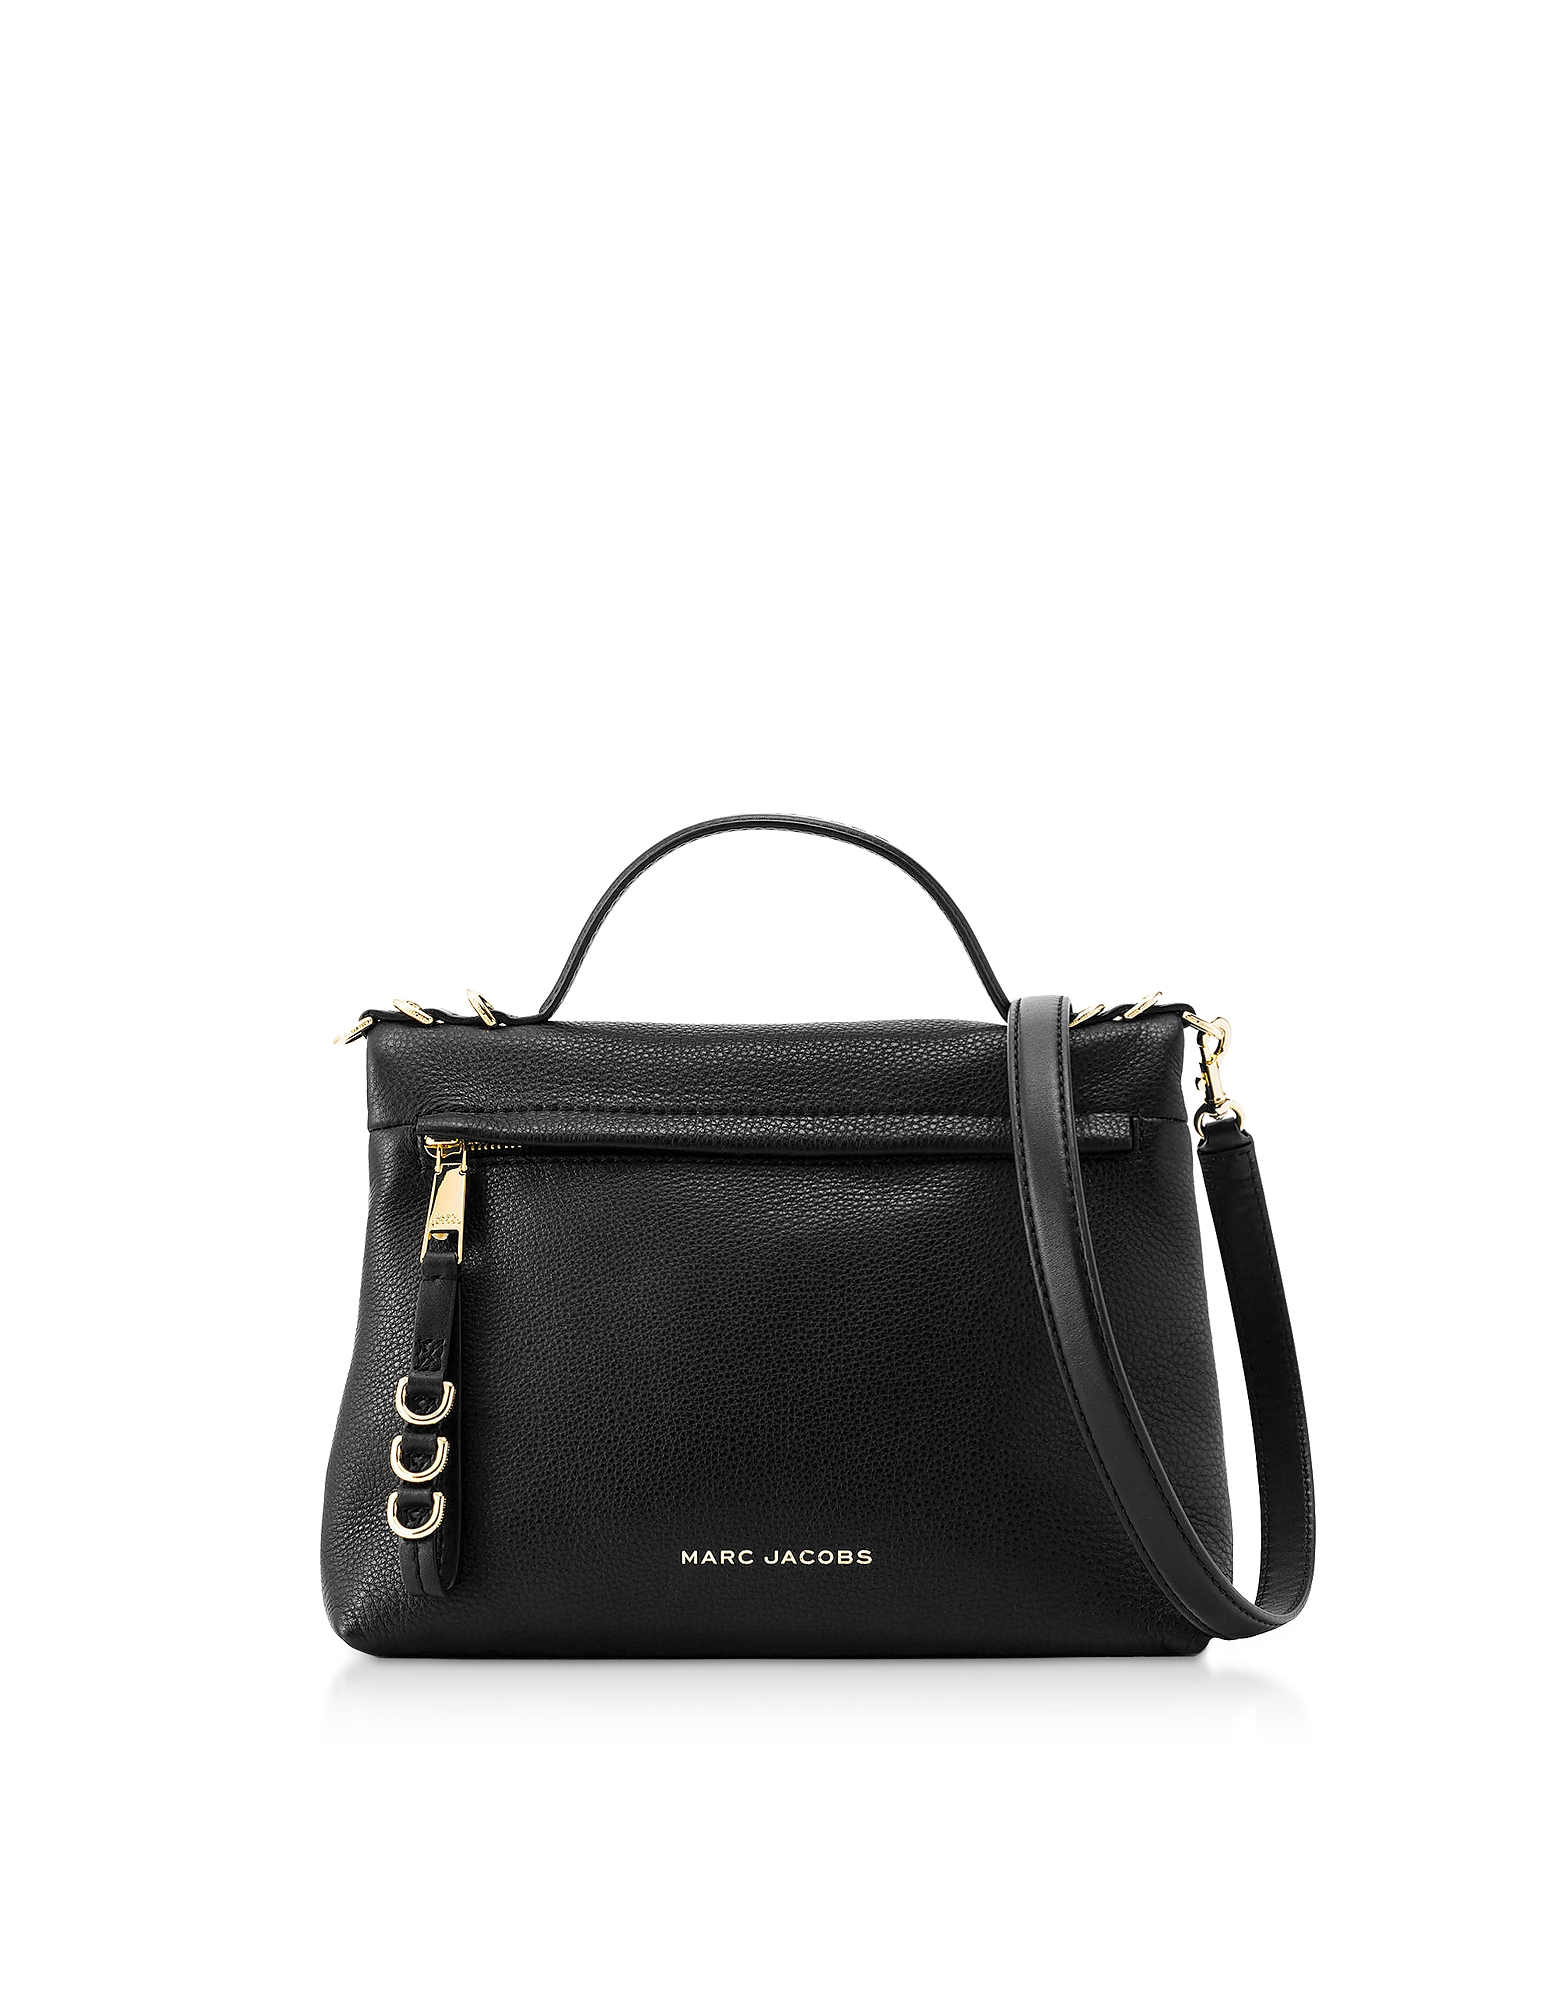 The Two Fold Black Satchel